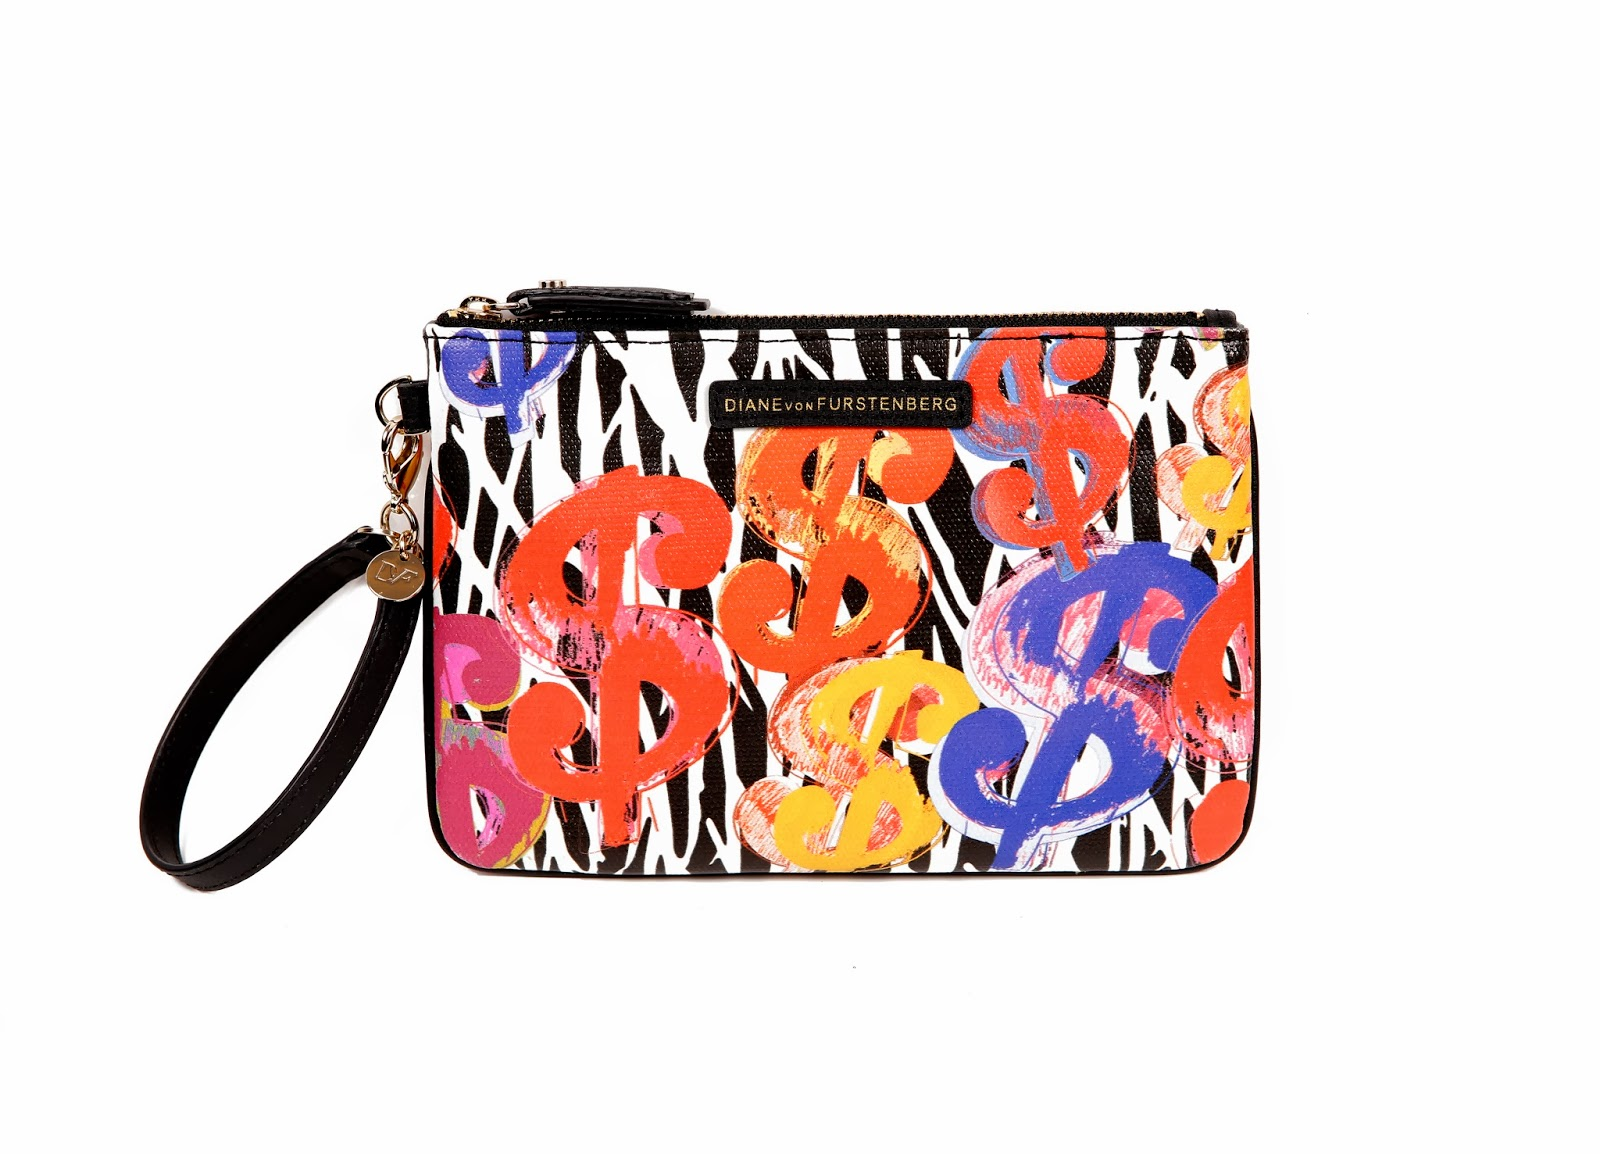 Diane von Furstenberg x Andy Warhol : Pop Wrap Collection